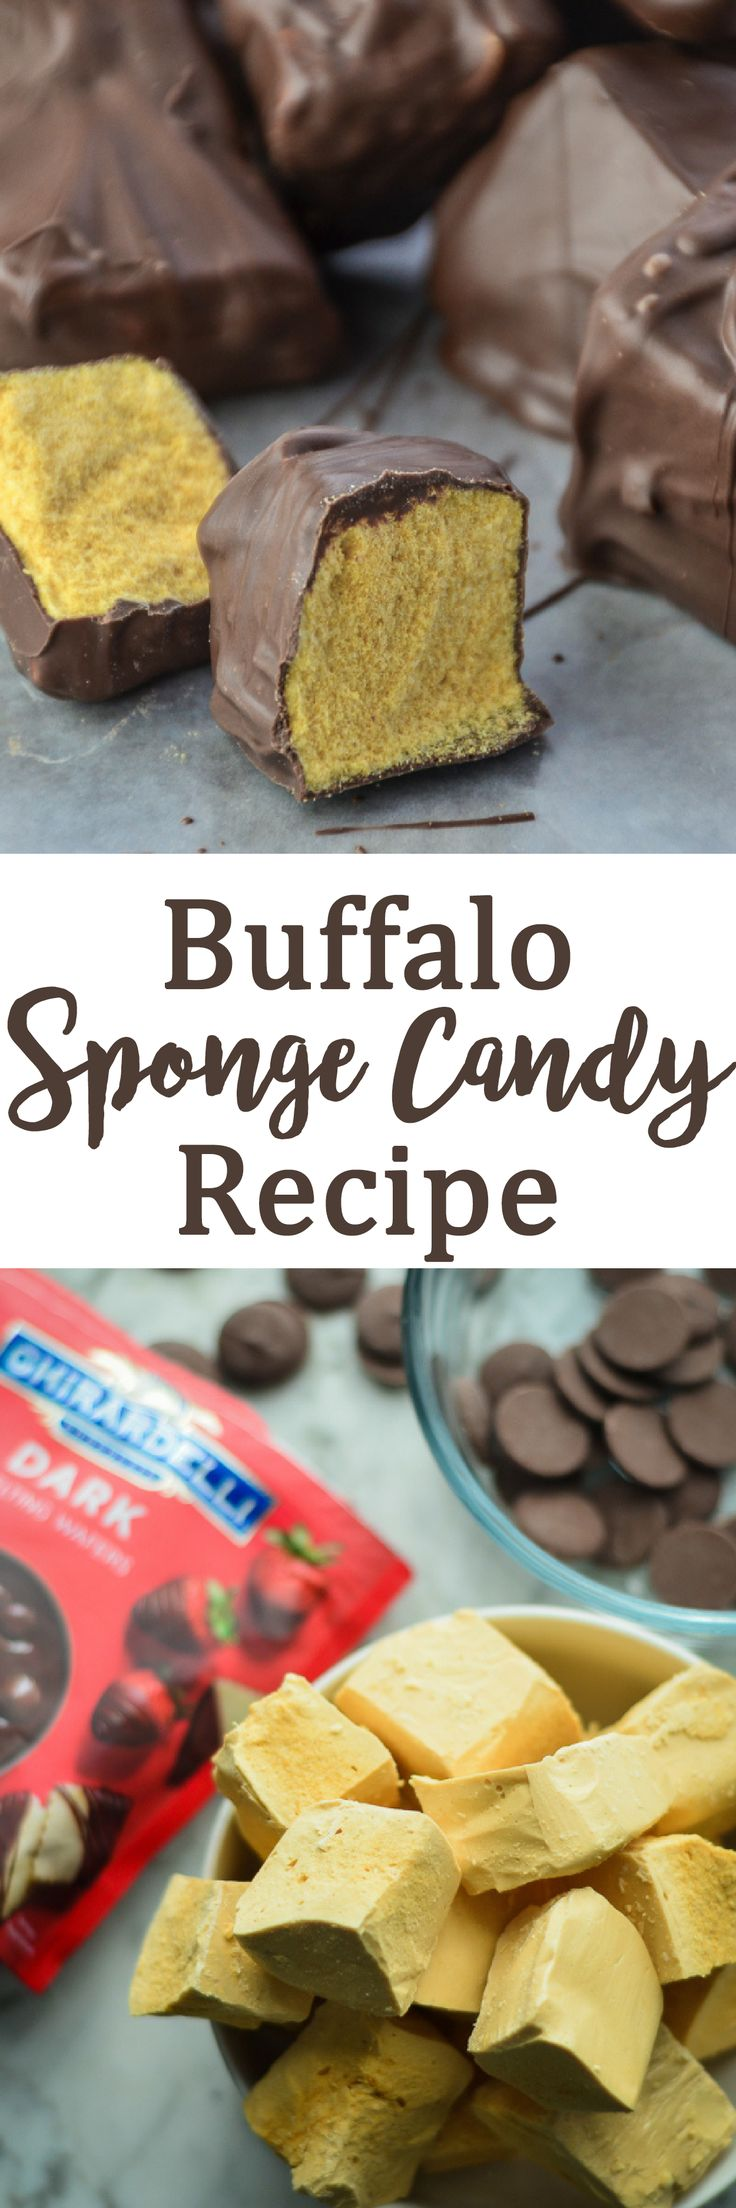 "Recipe for Homemade Buffalo Sponge Candy, with a light-as-air crispy ""sponge"" of aerated toffee, dipped in dark chocolate. via @homeinFLX"